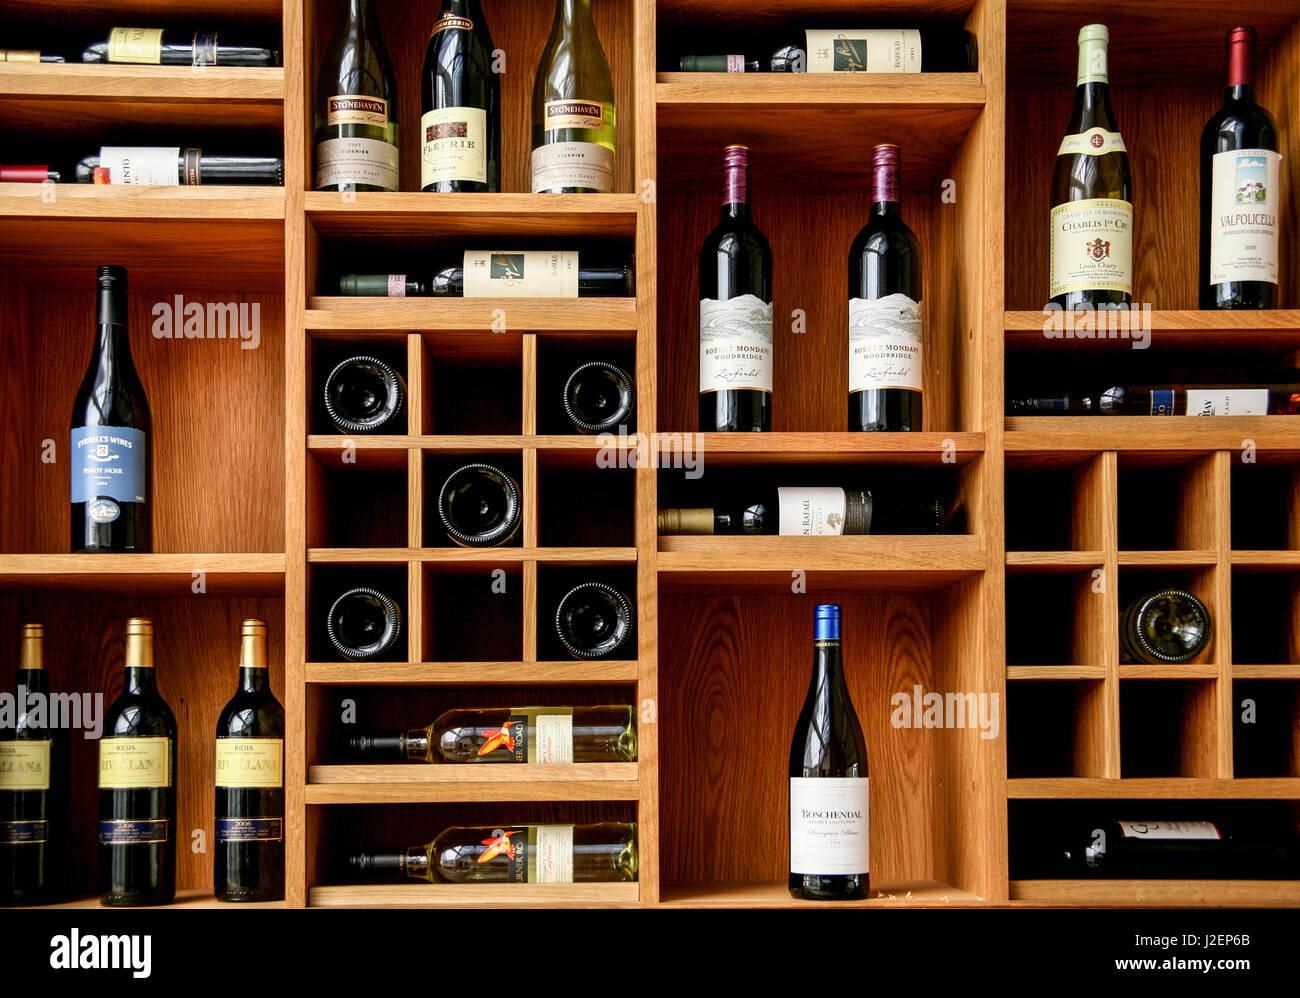 Wine Bottle Display Wine Bottle Display Stock Photos & Wine Bottle Display Stock .